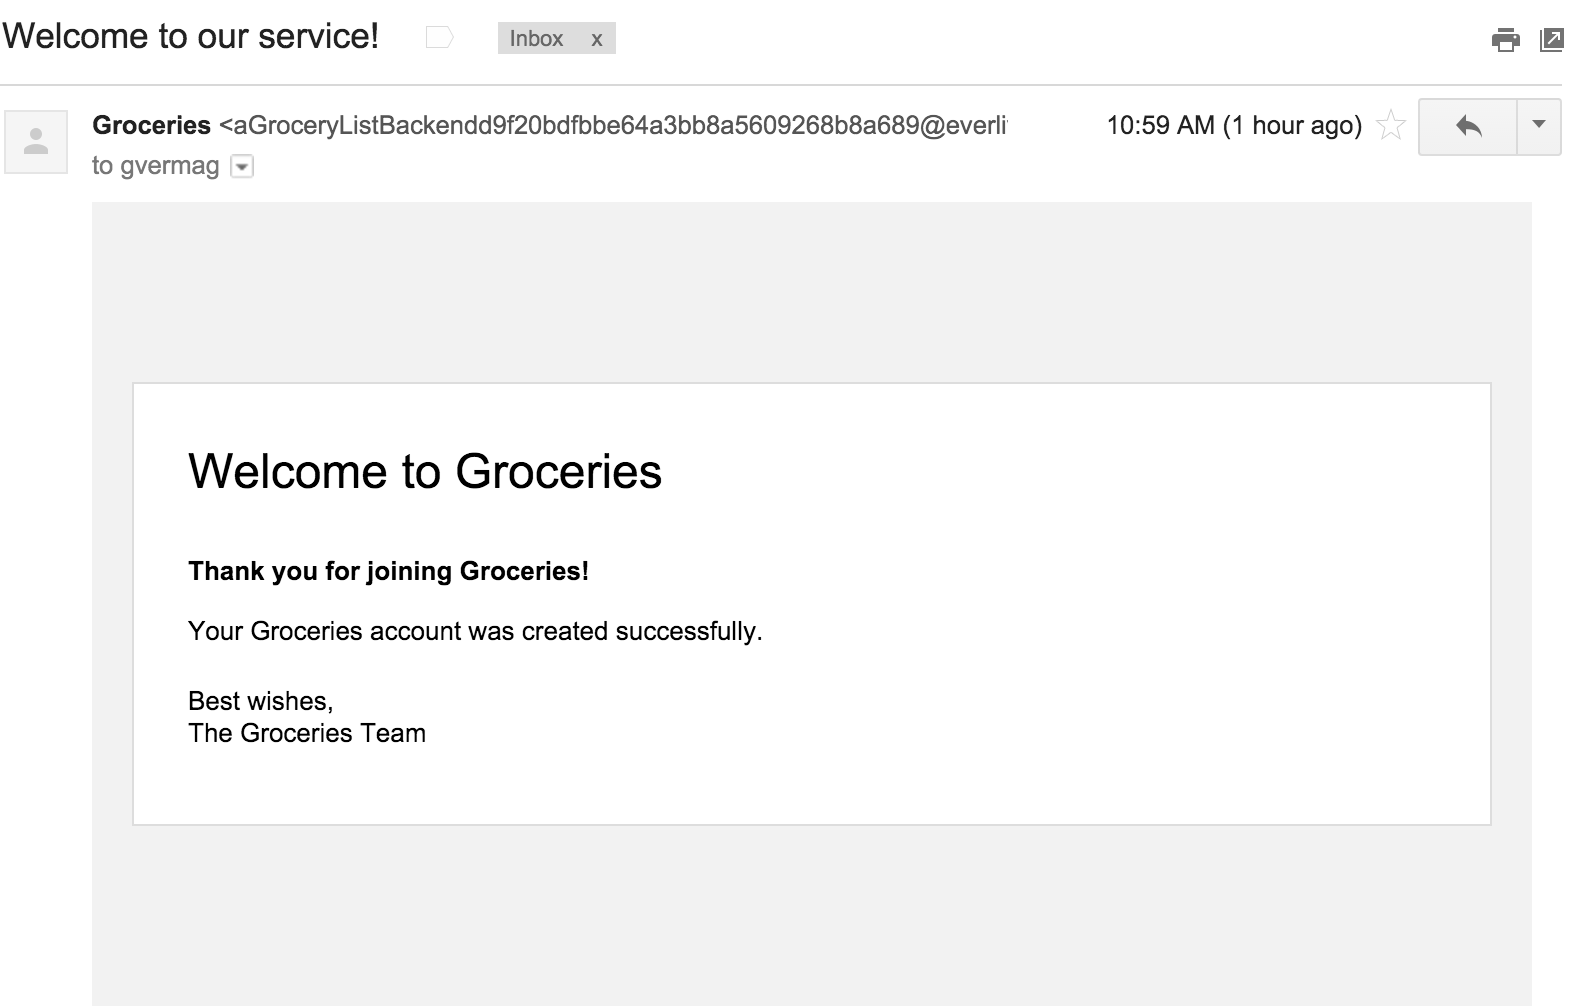 NativeScript_Groceries_App_Confirm